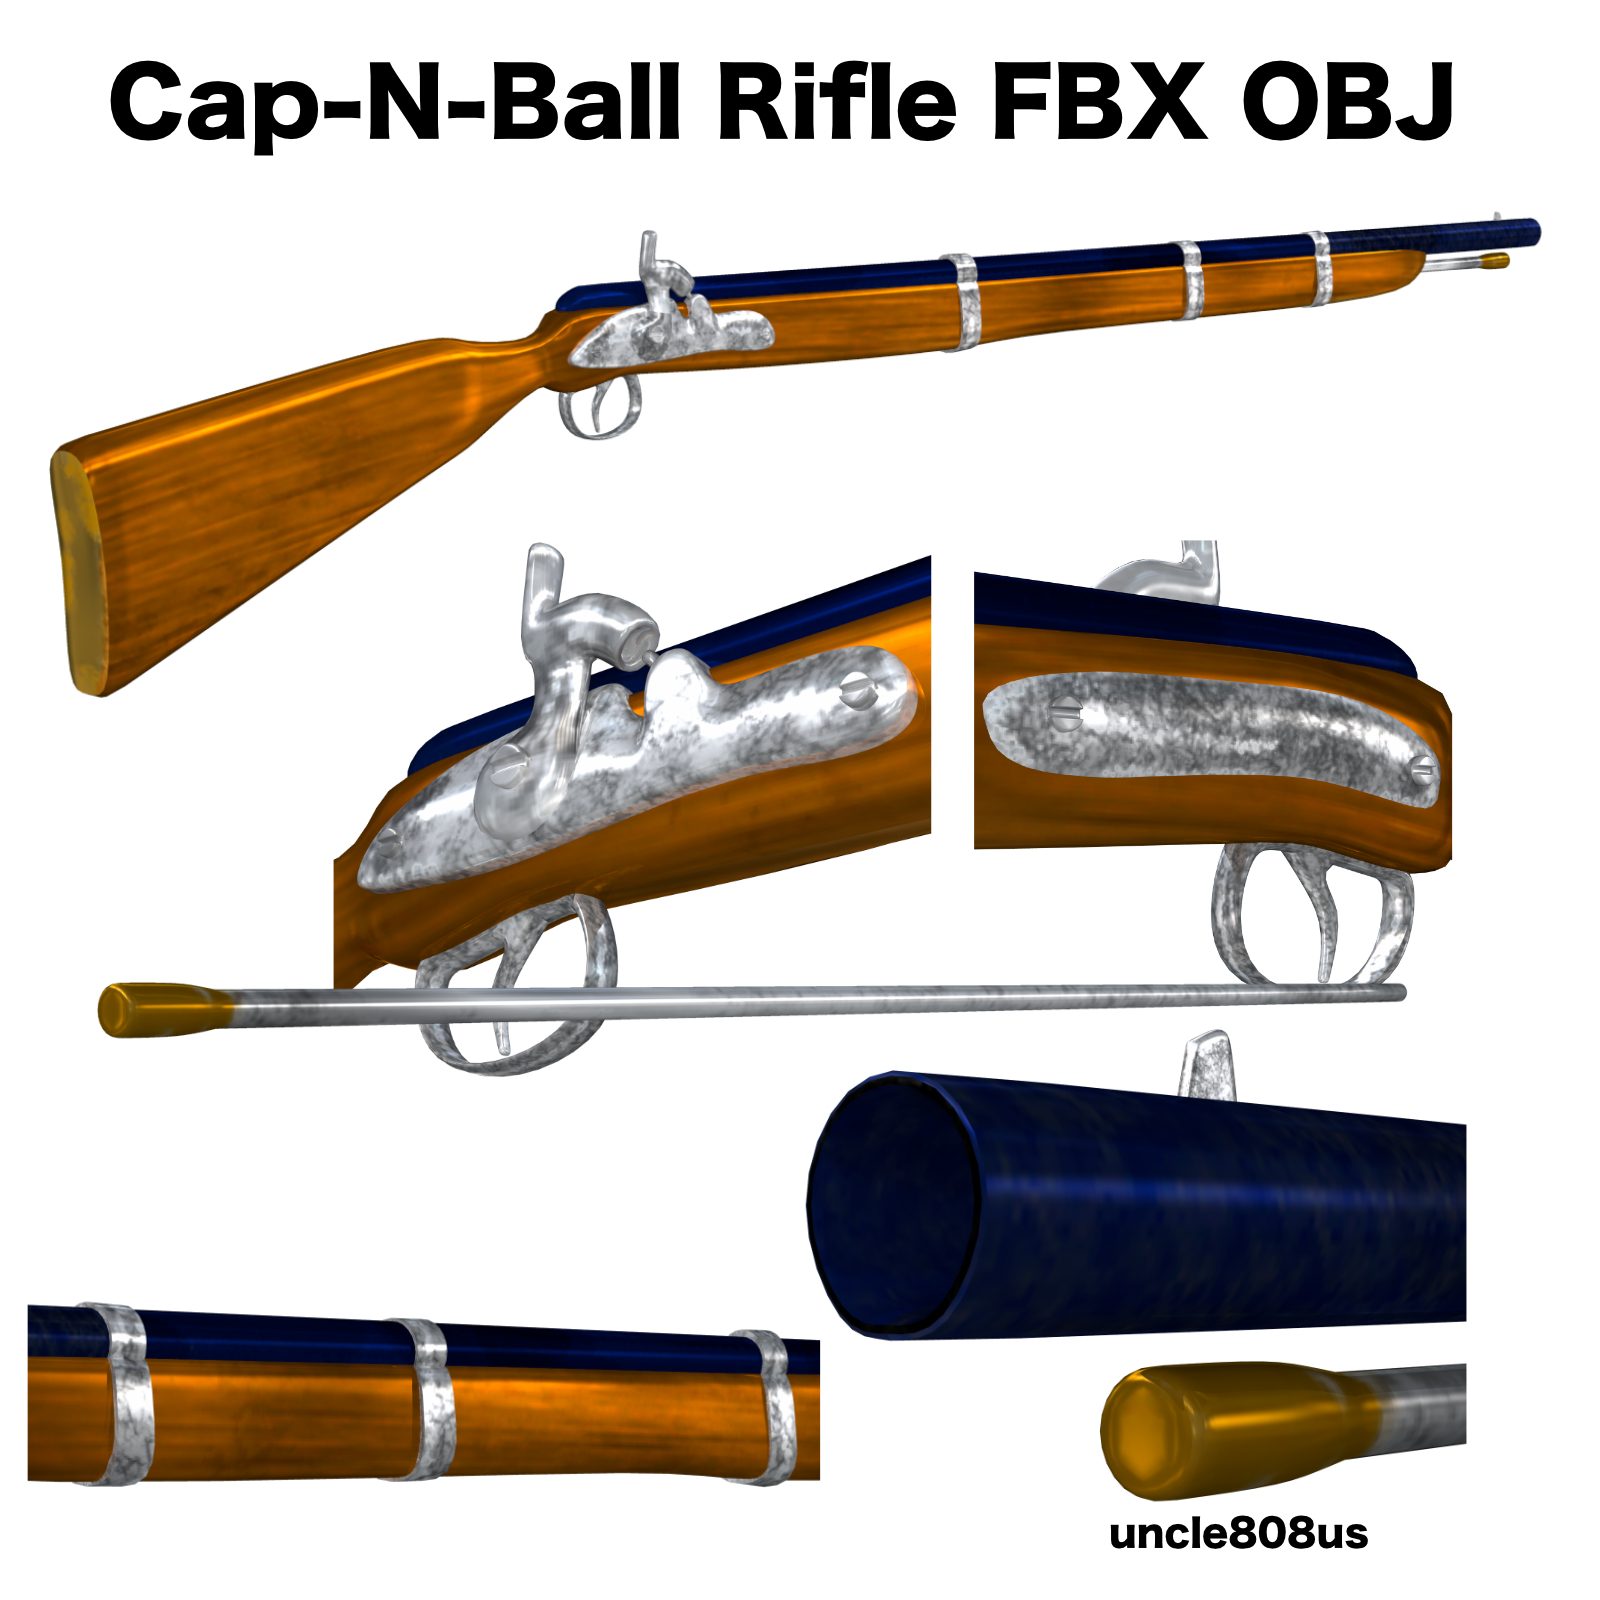 cap-n-ball puška fbx obj 3d model fbx 220981